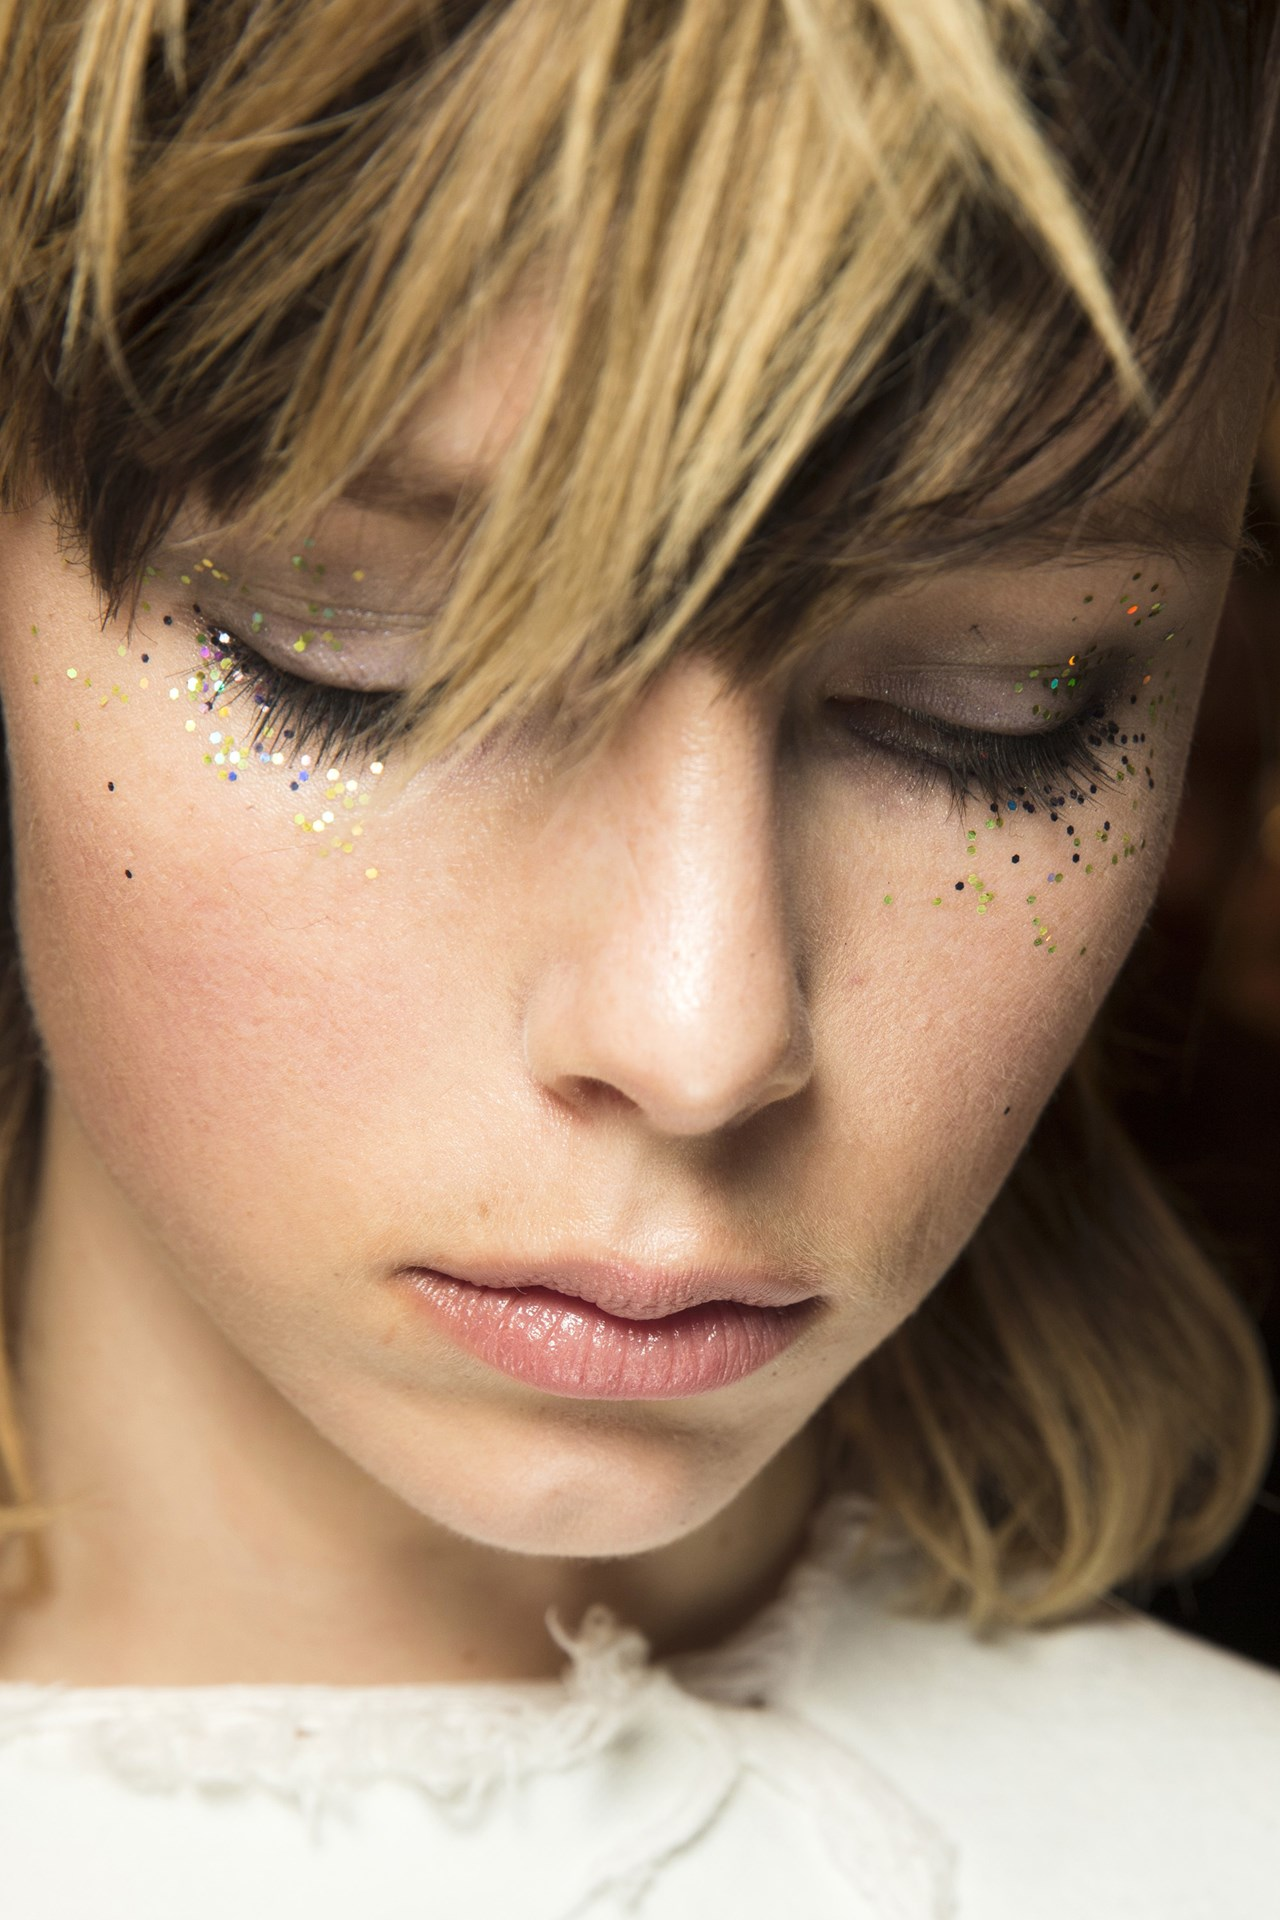 Burberry- At Burberry, Wendy Rowe smudged kohl into the lash line and then diffused glitter from the outer corners of some models' eyes.